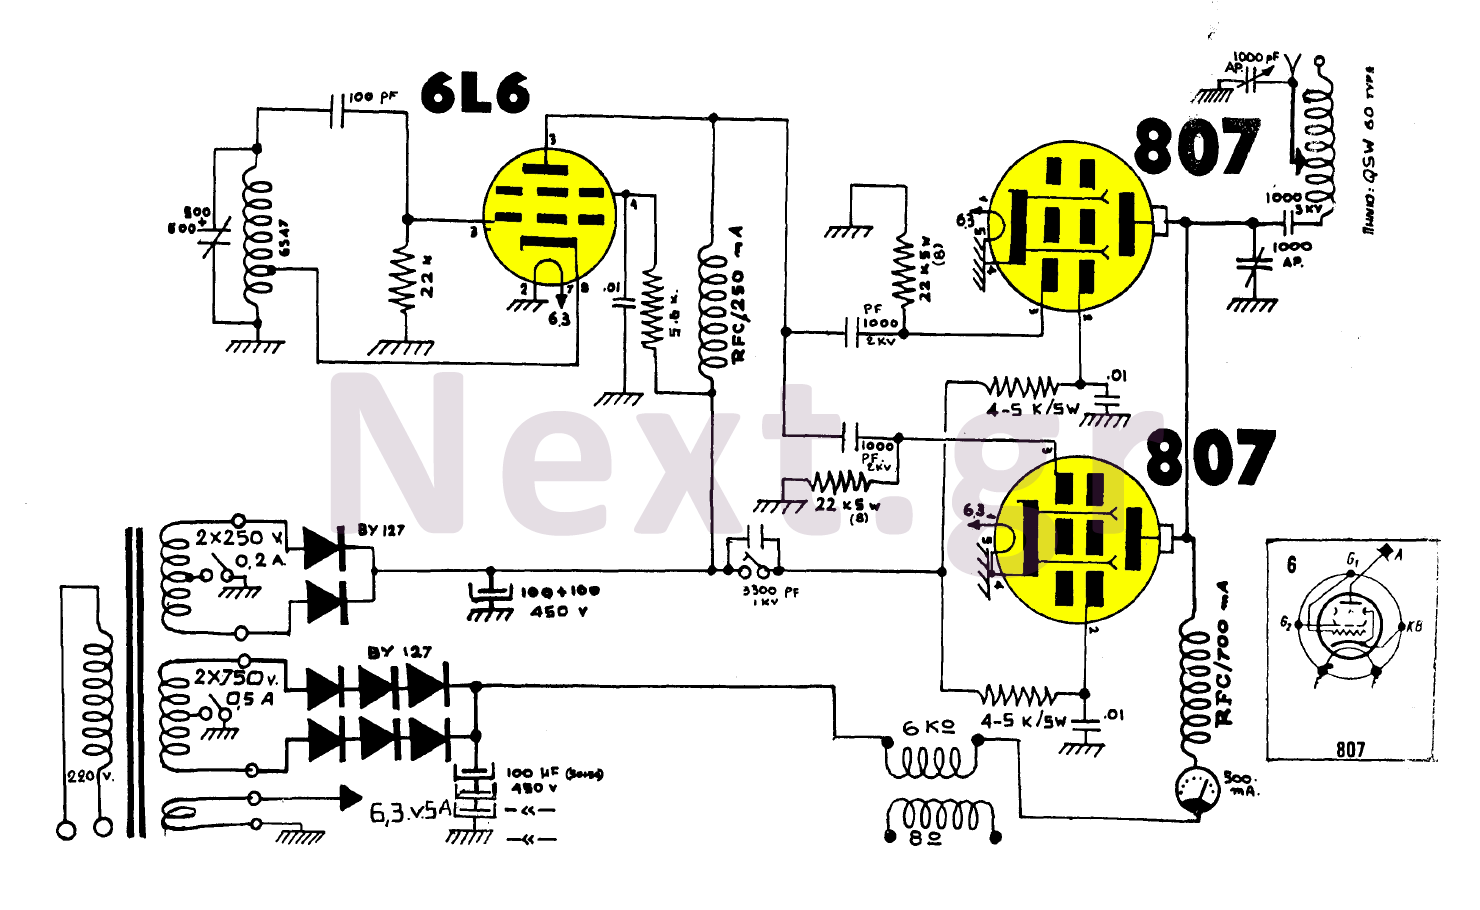 100W AM Valve Transmitter circuit - schematic